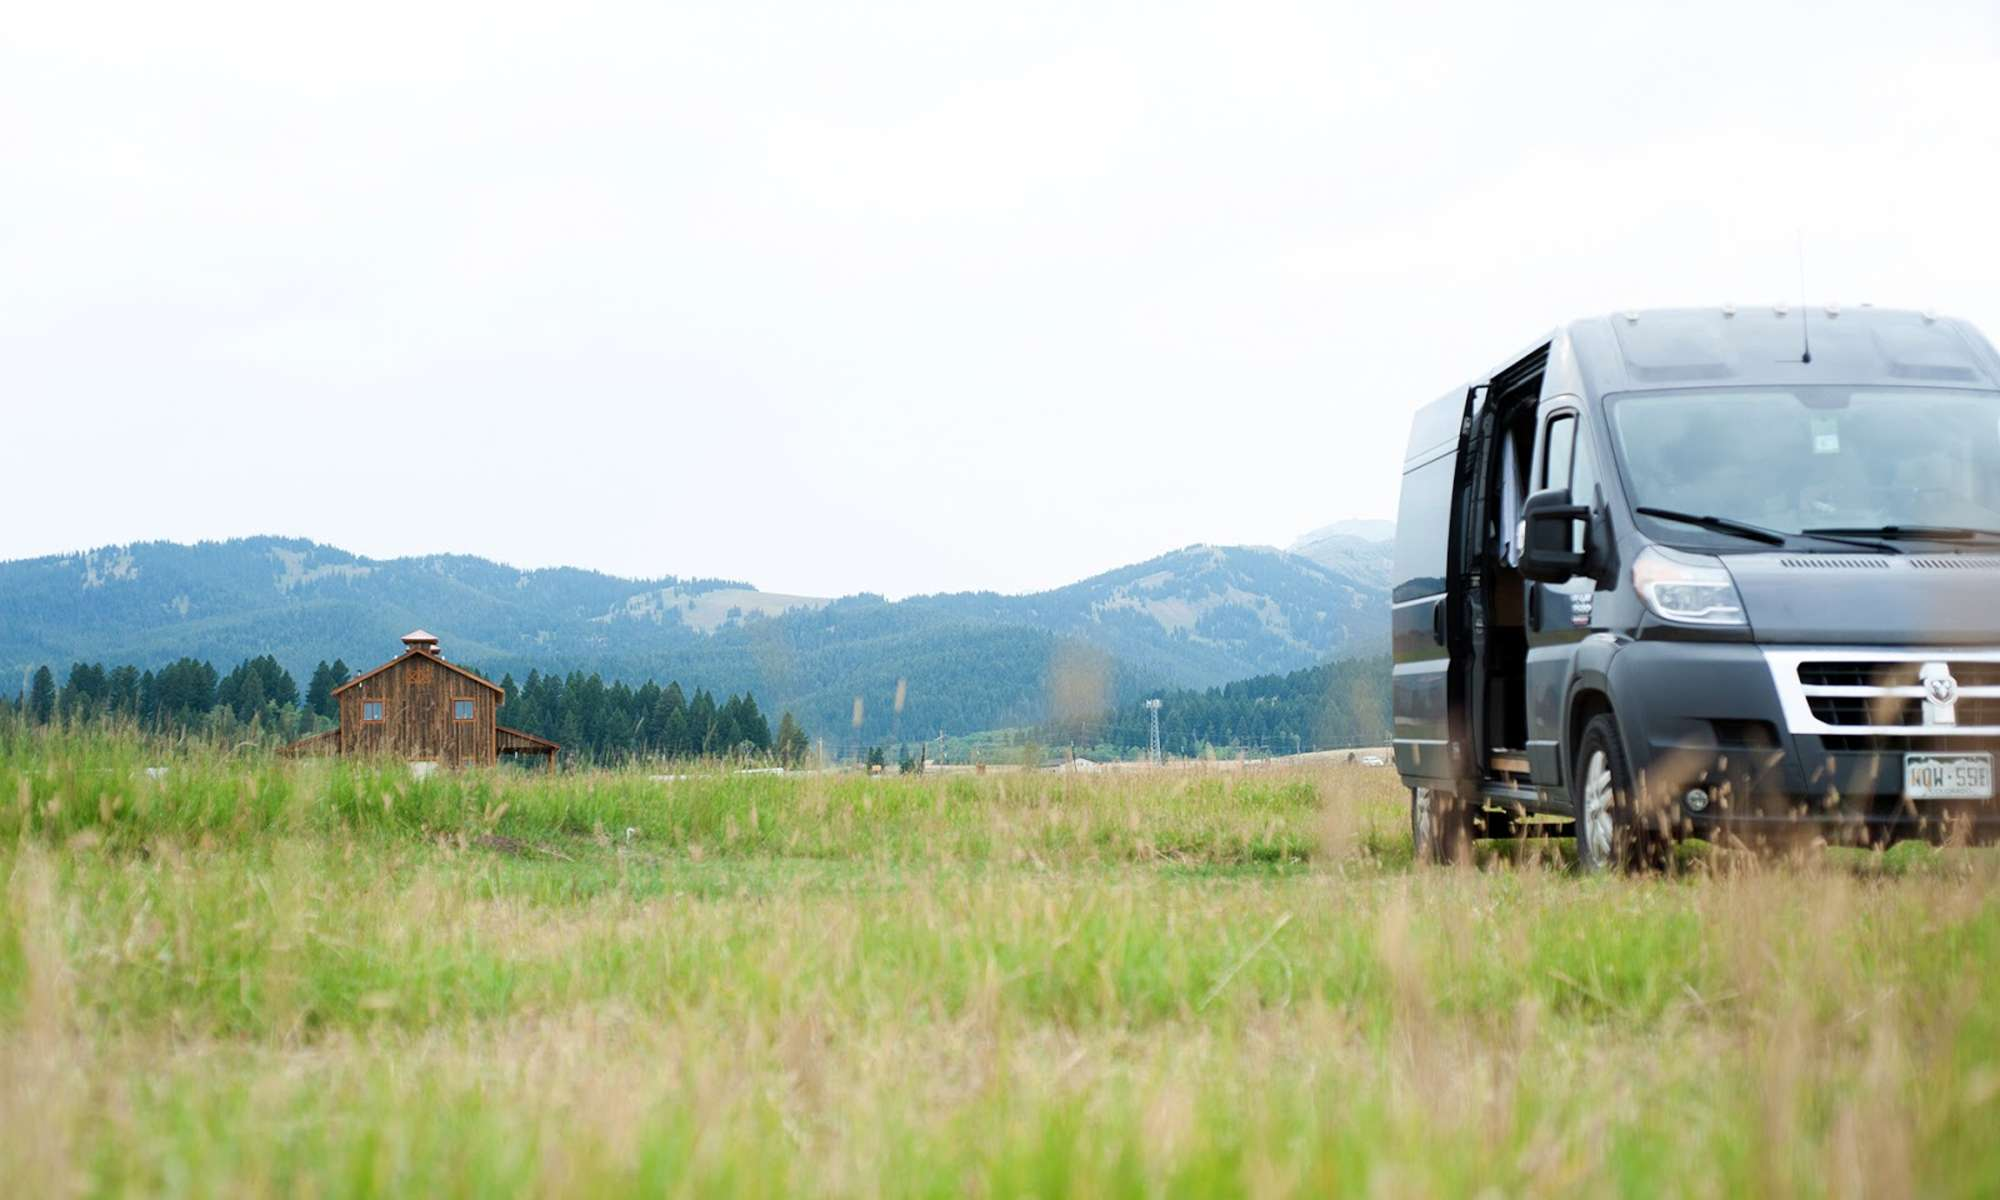 Big Sky Ranch Camping West of Yellowstone National Park